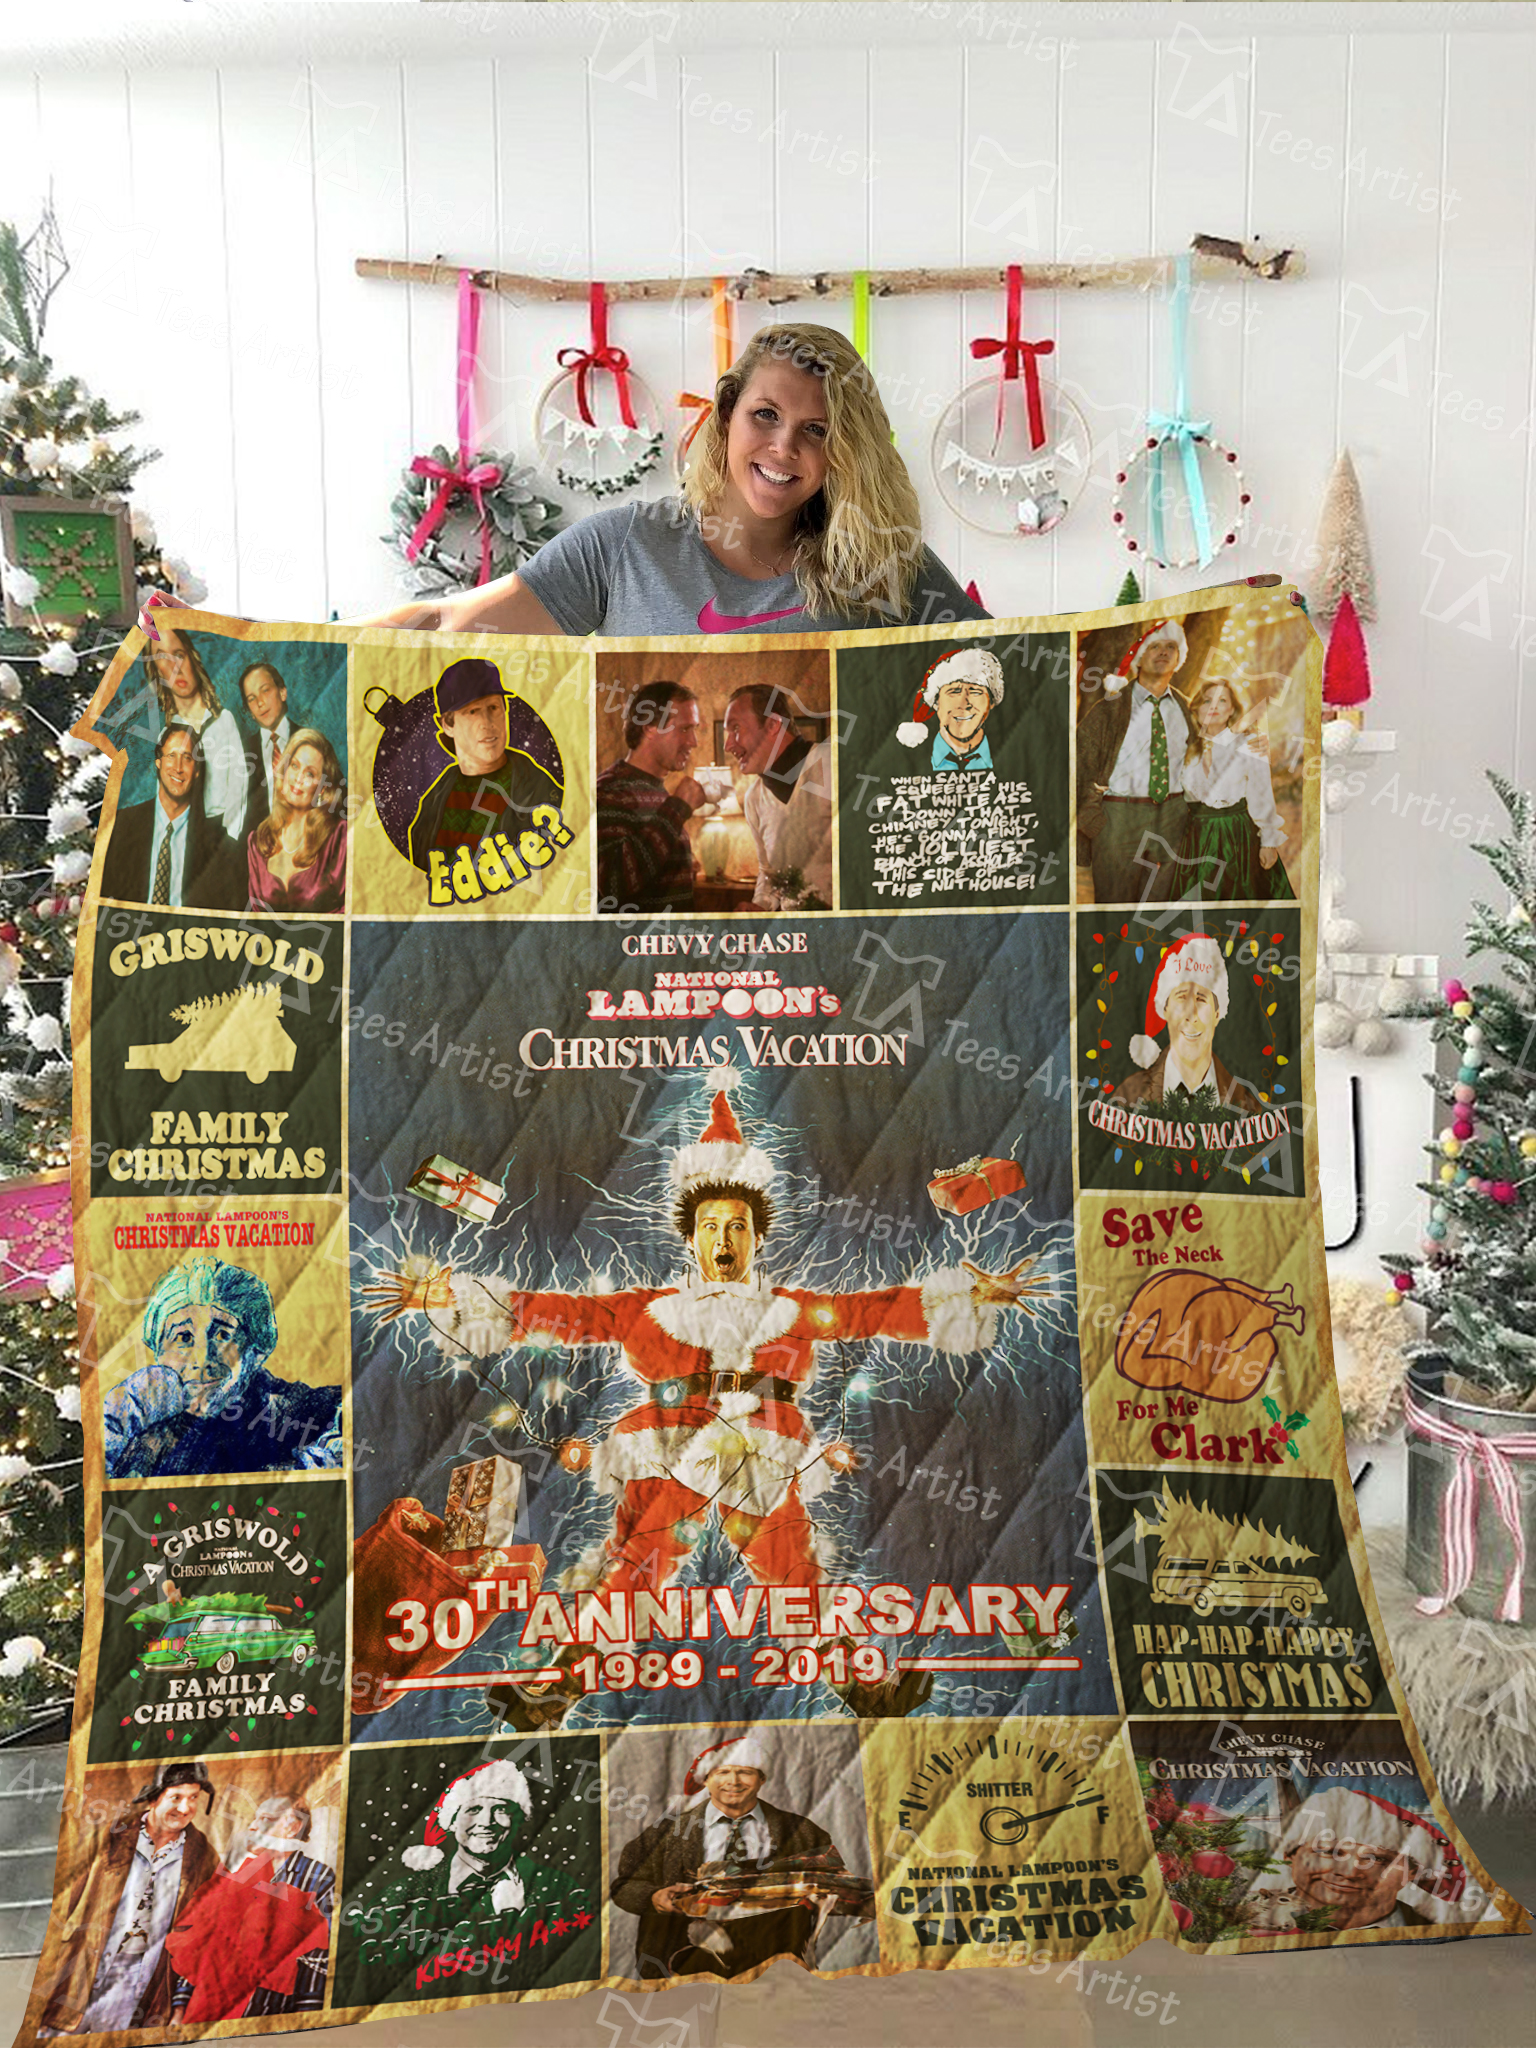 National lampoon's christmas vacation 30th anniversary quilt 3